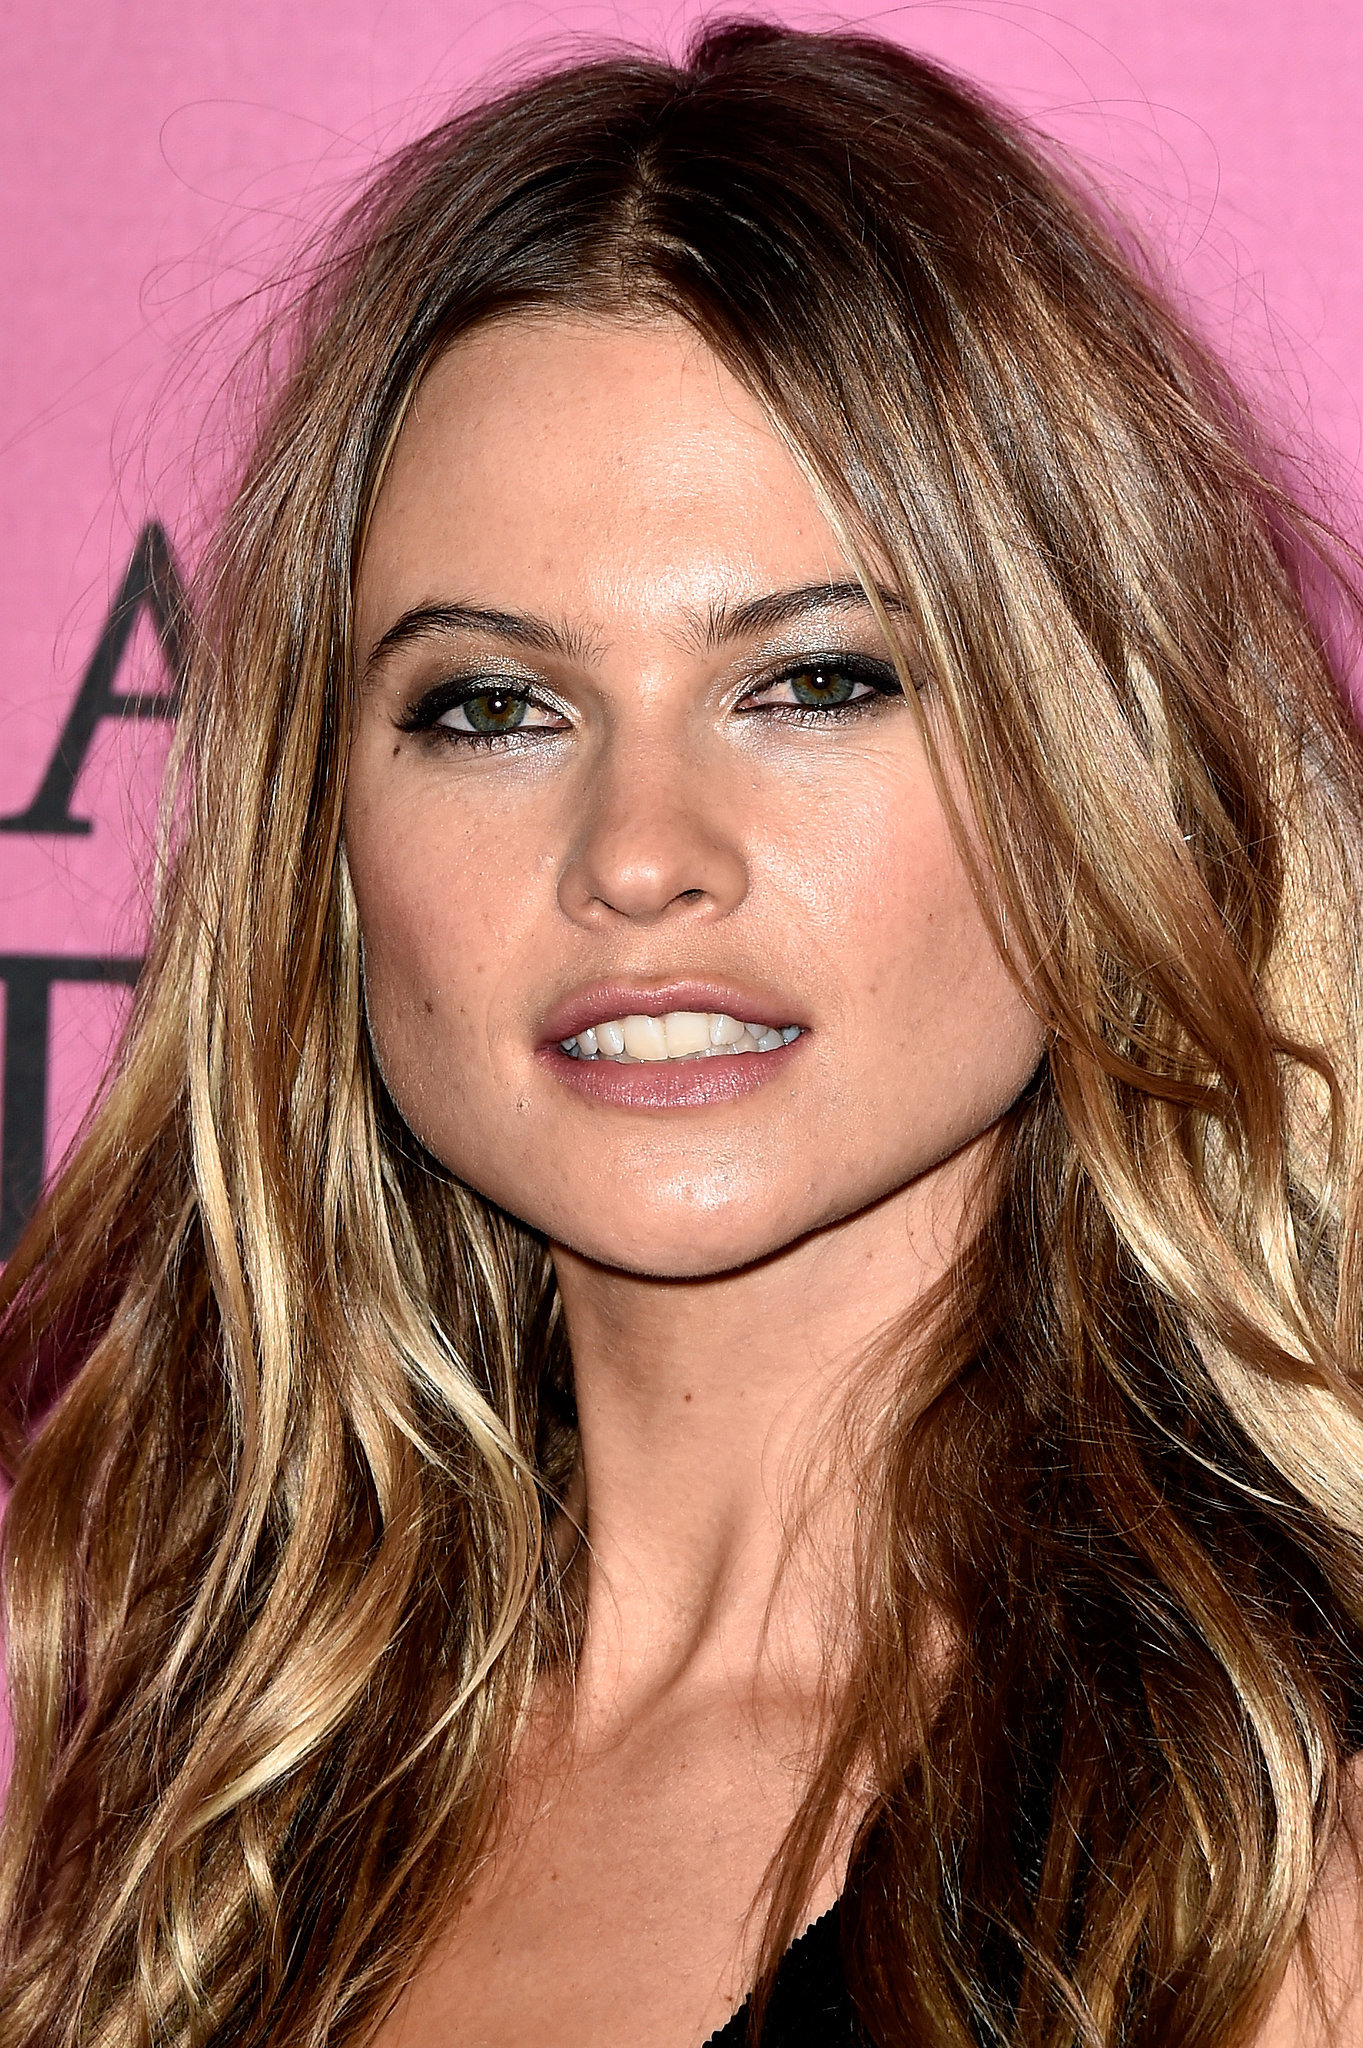 Behati Prinsloo 30 Makeup And Hair Ideas To Copy On